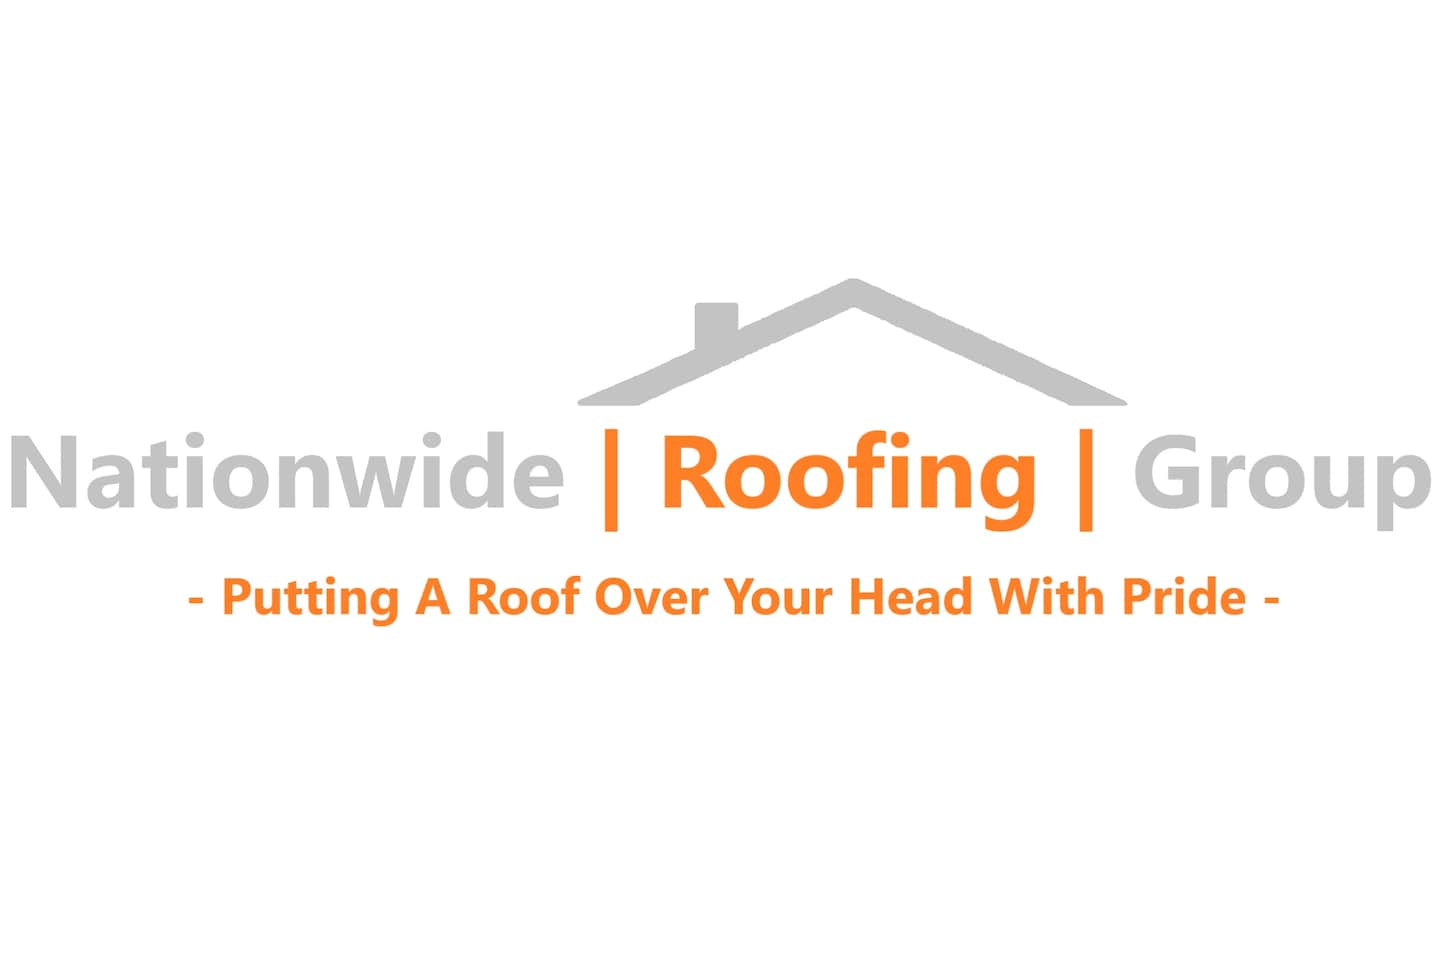 Nationwide Roofing Group